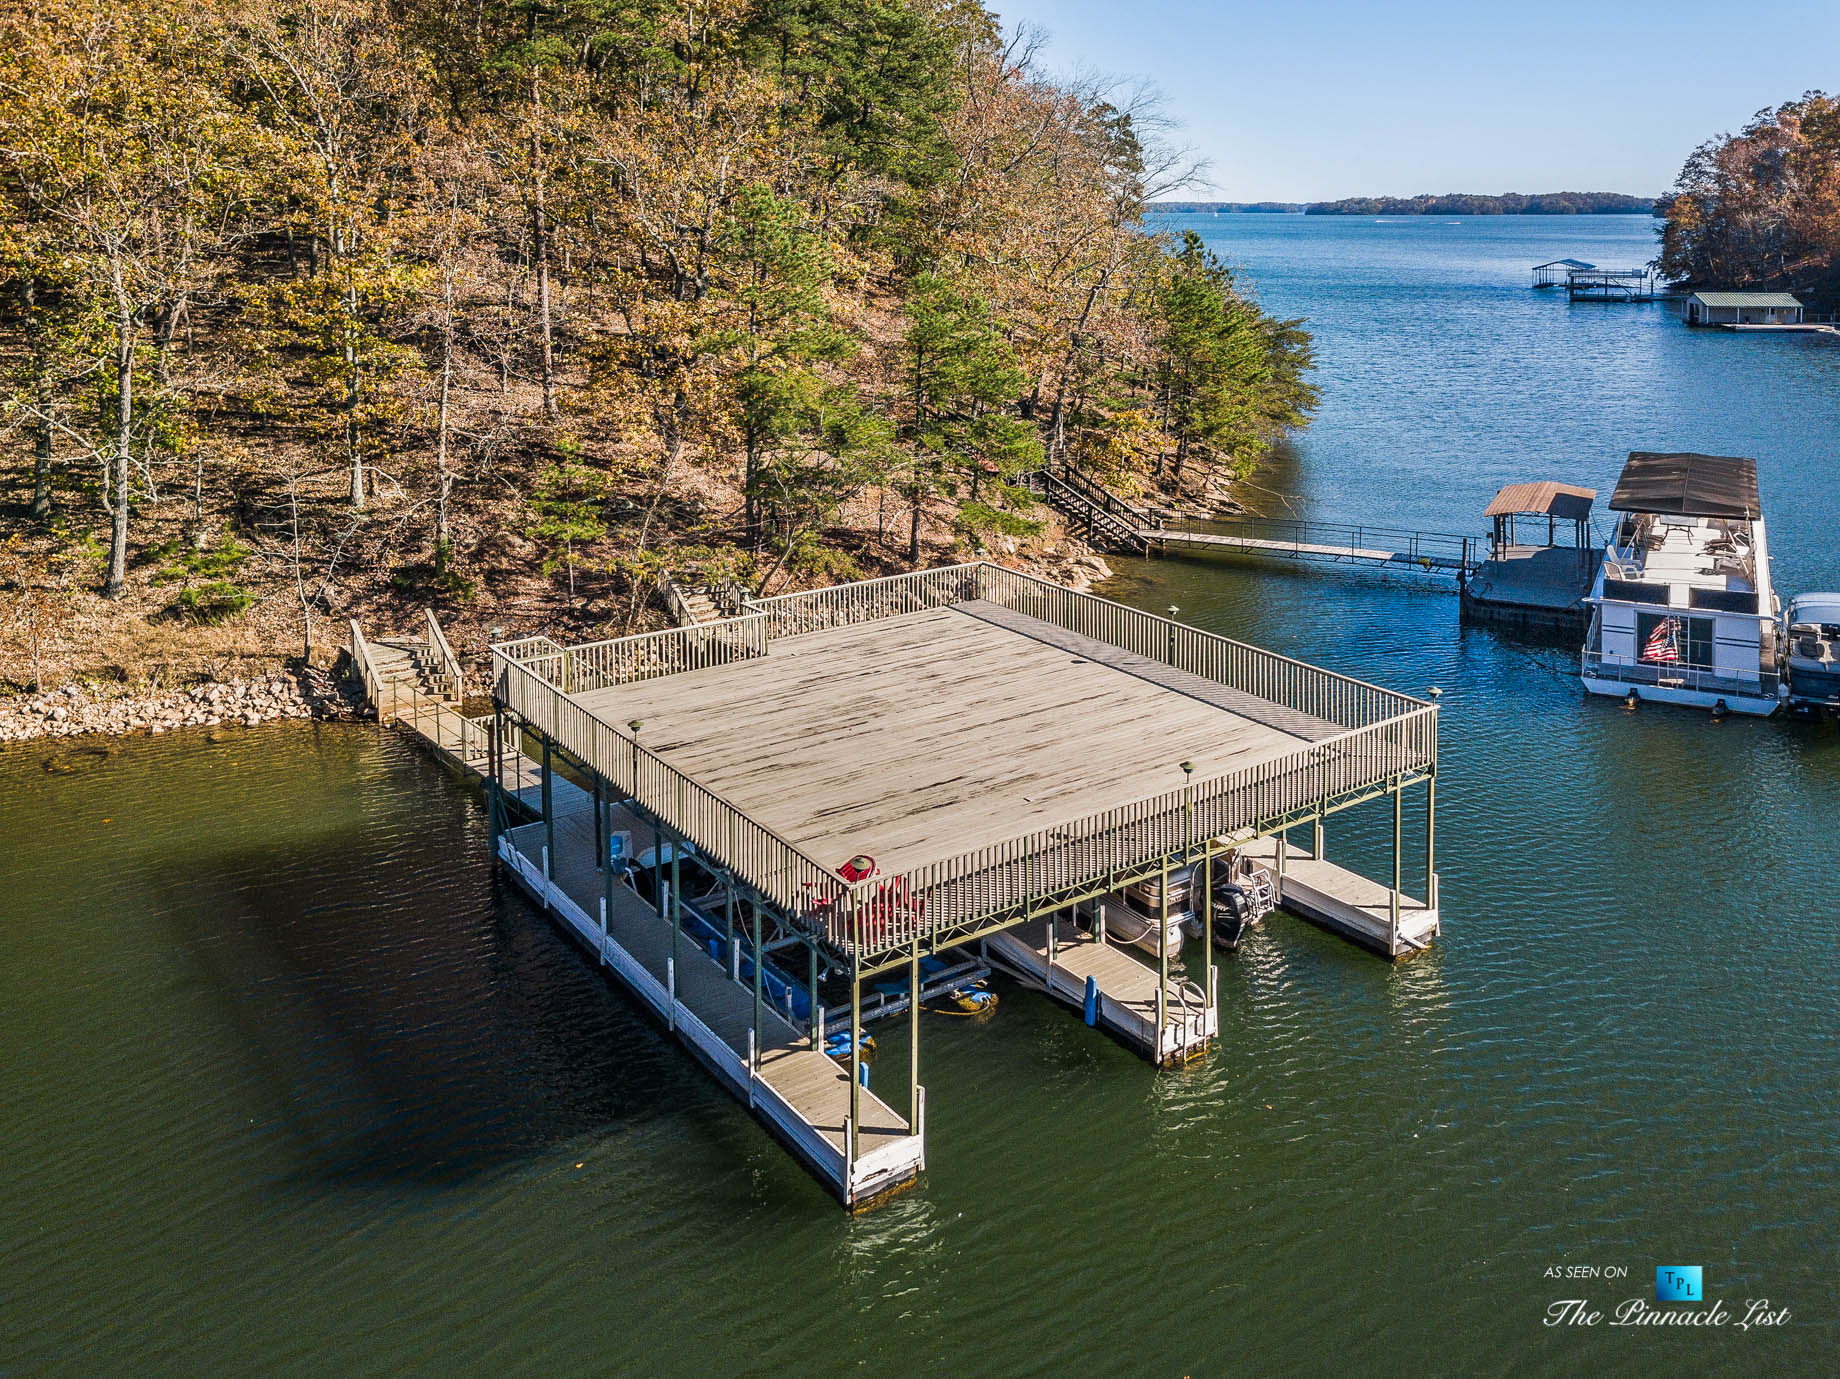 7860 Chestnut Hill Rd, Cumming, GA, USA – Private Dock with Sundeck – Luxury Real Estate – Lake Lanier Mid-Century Modern Stone Home